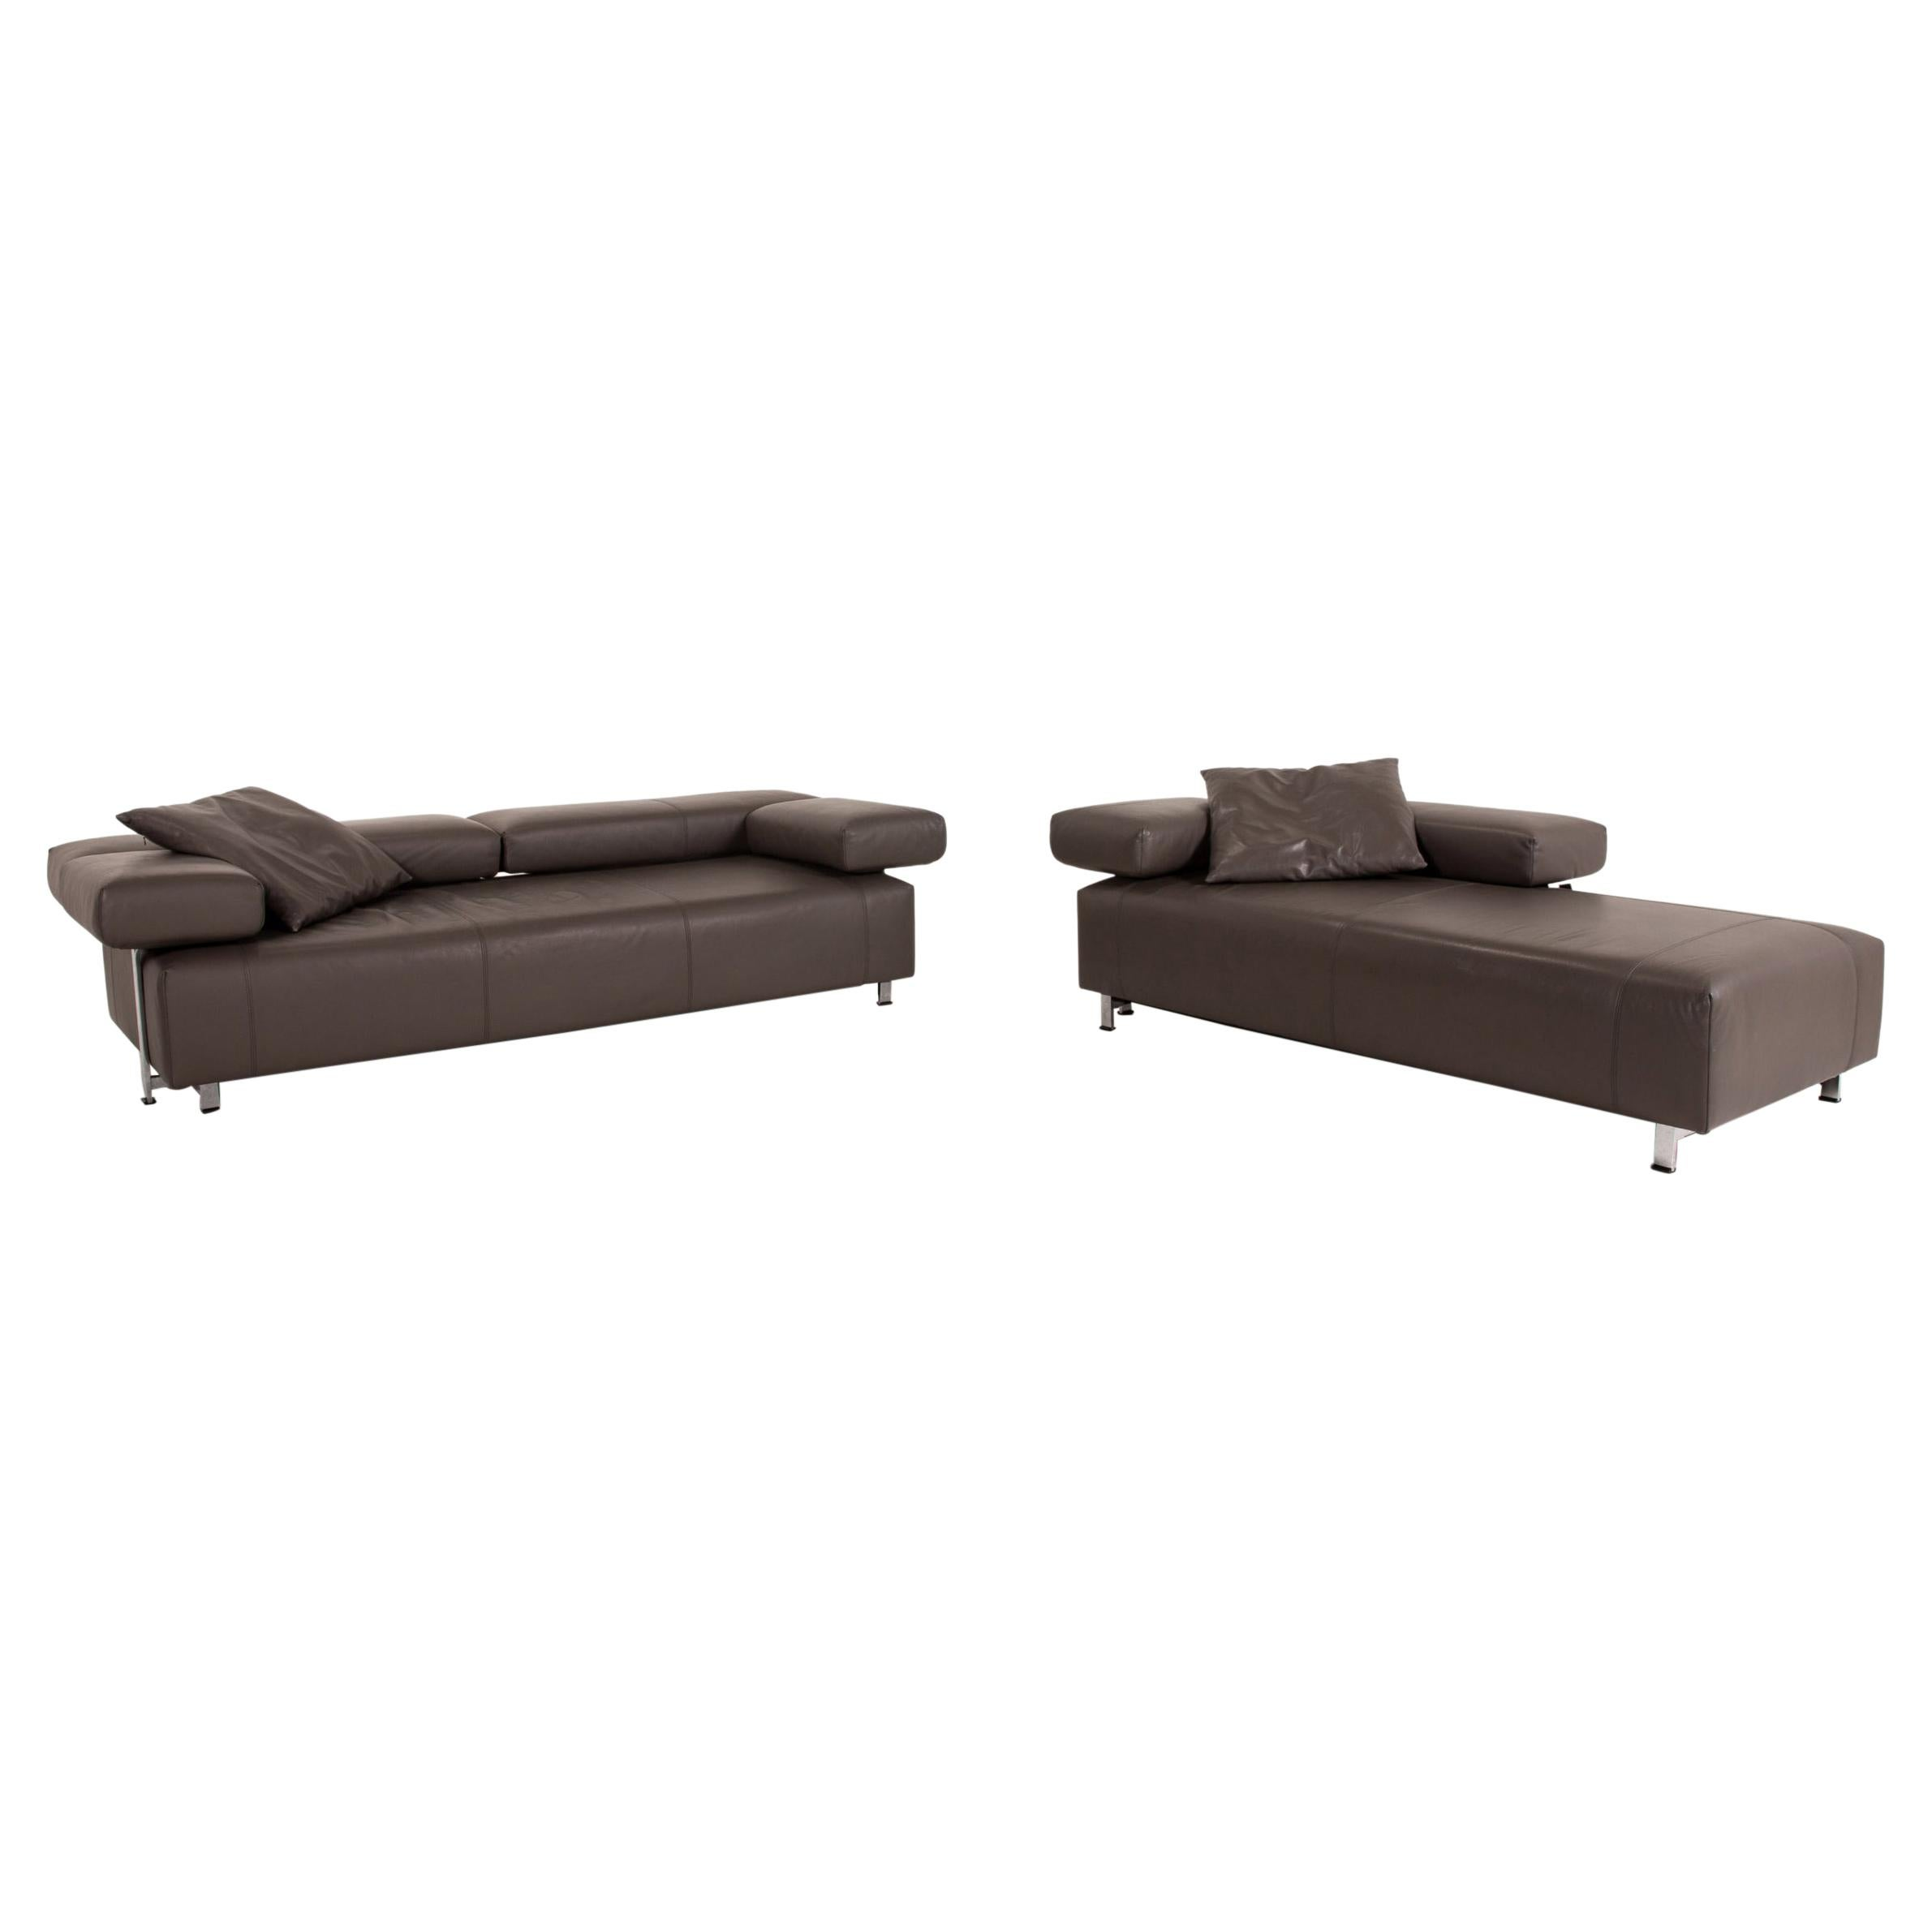 FSM Velas Sofa Set Gray 1 Three-Seater 1 Two-Seater Function Couch